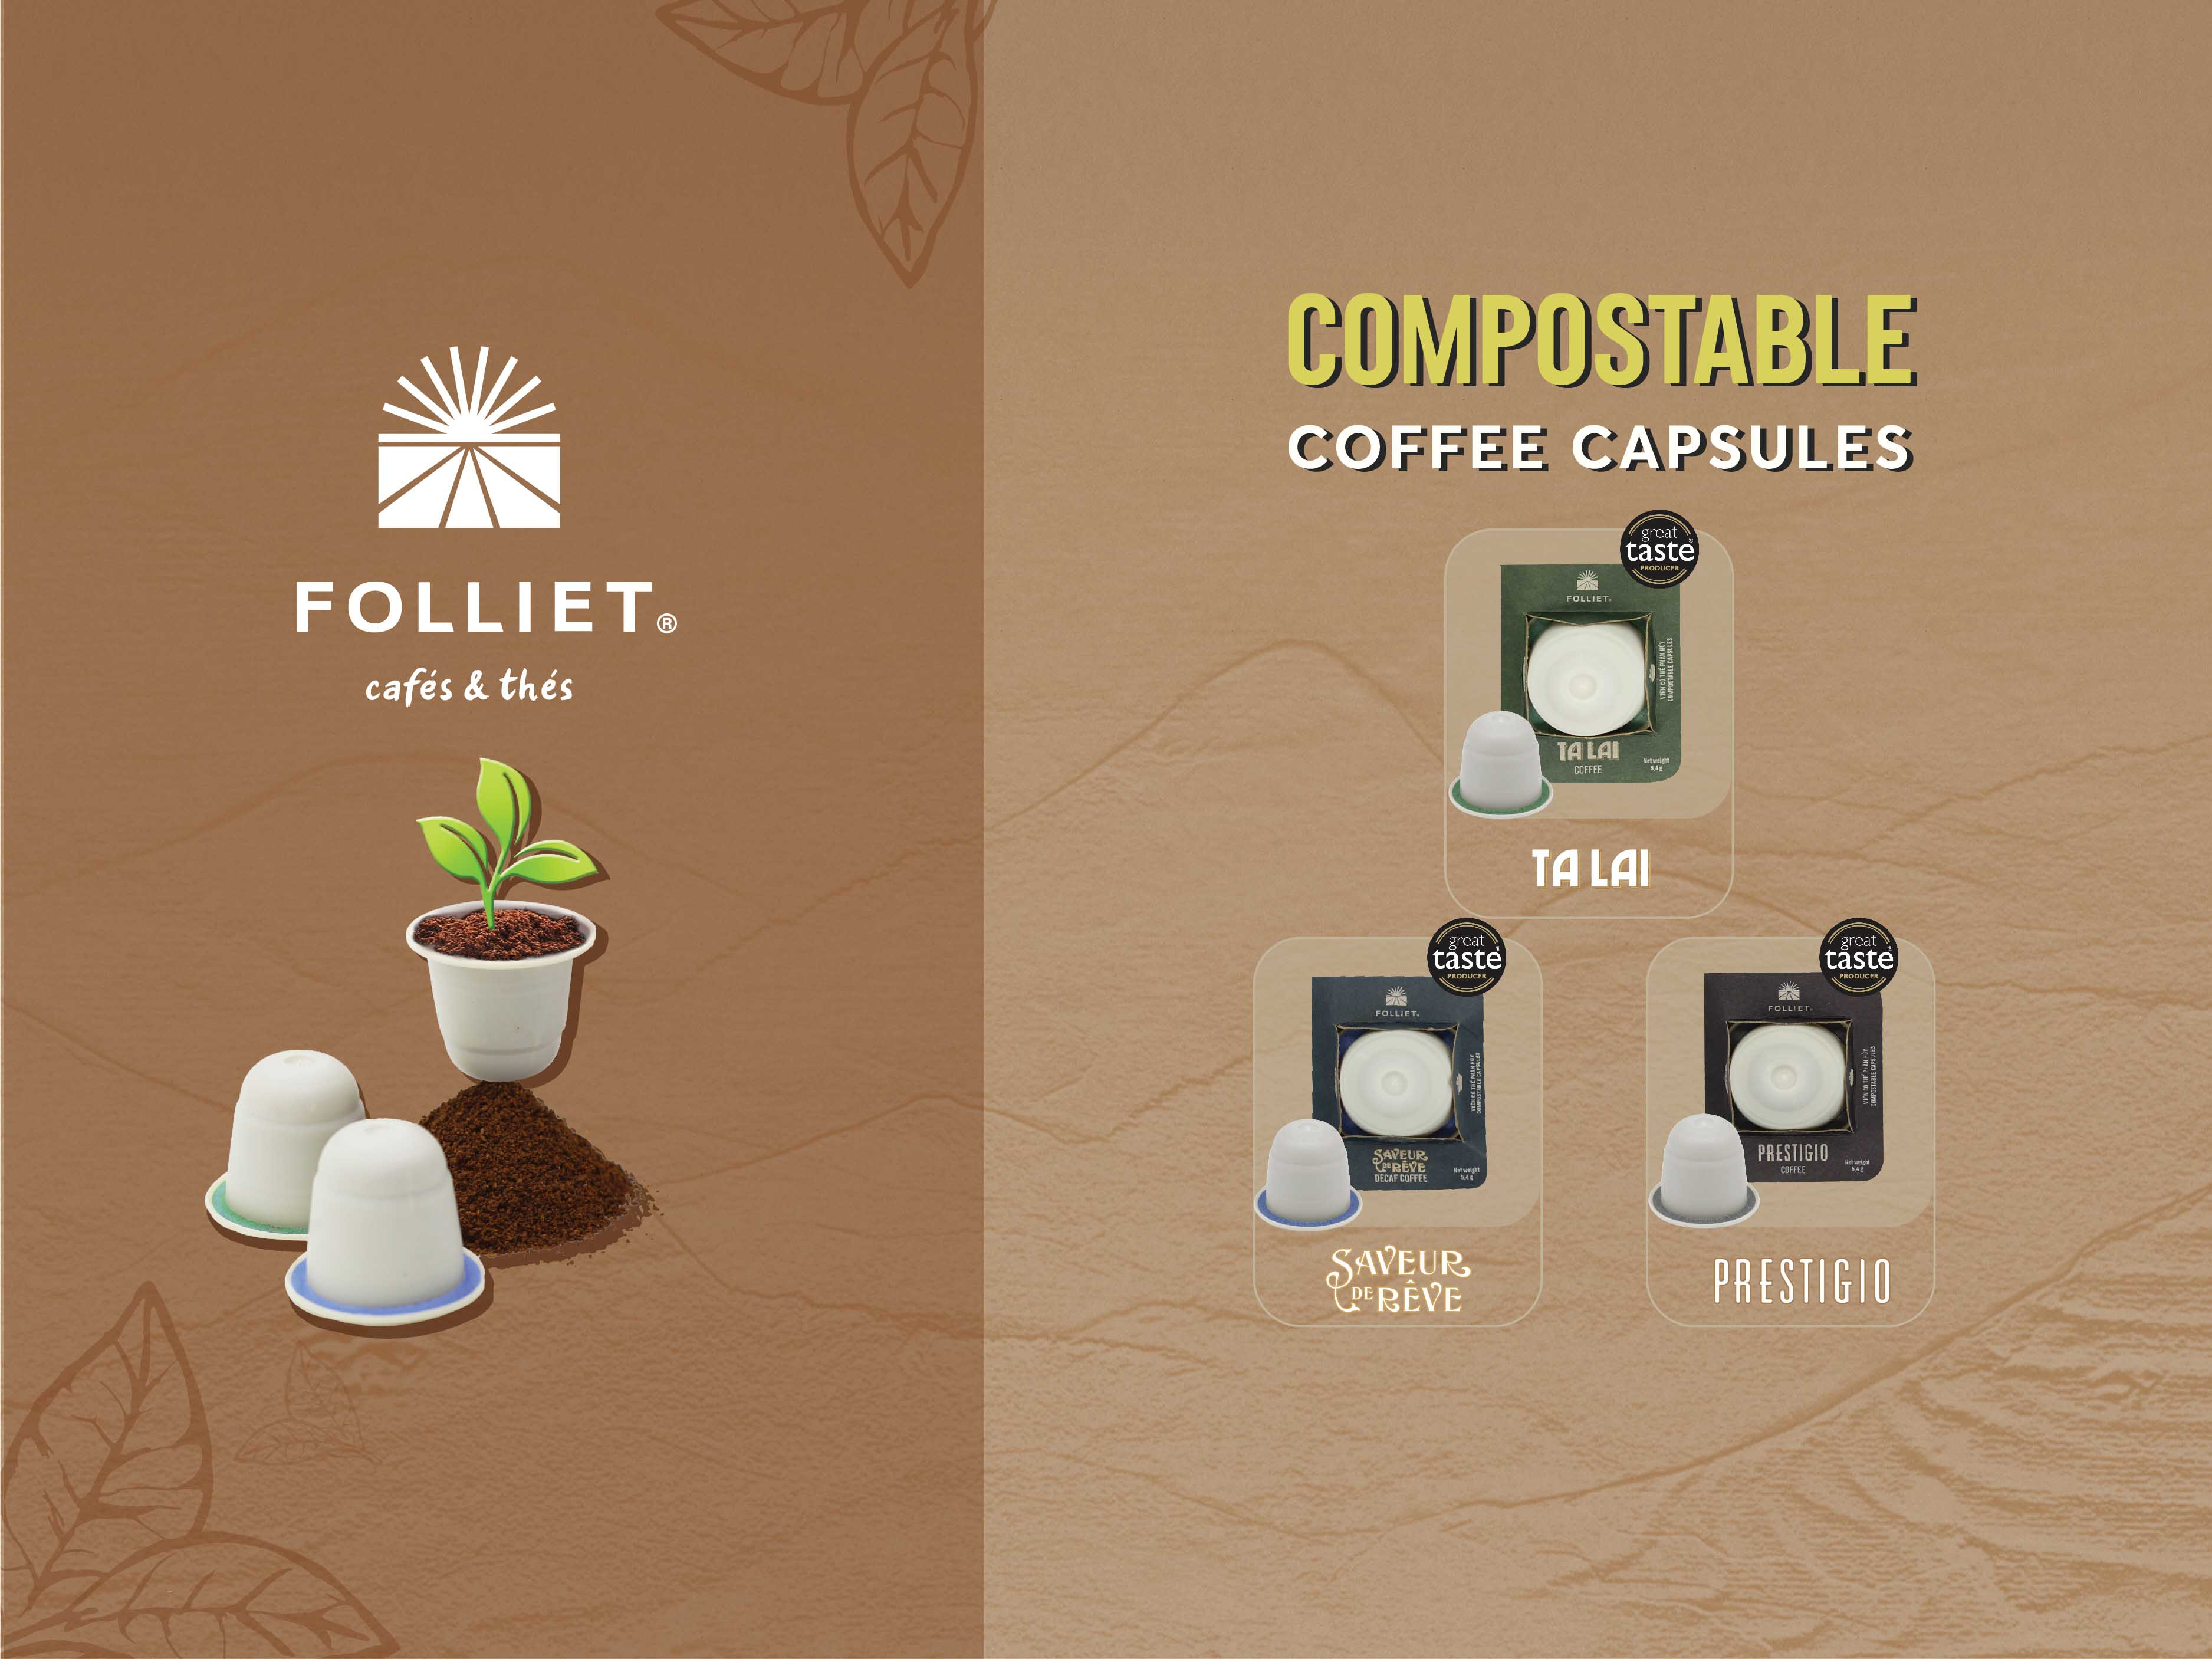 Folliet® Compostable Coffee Capsules